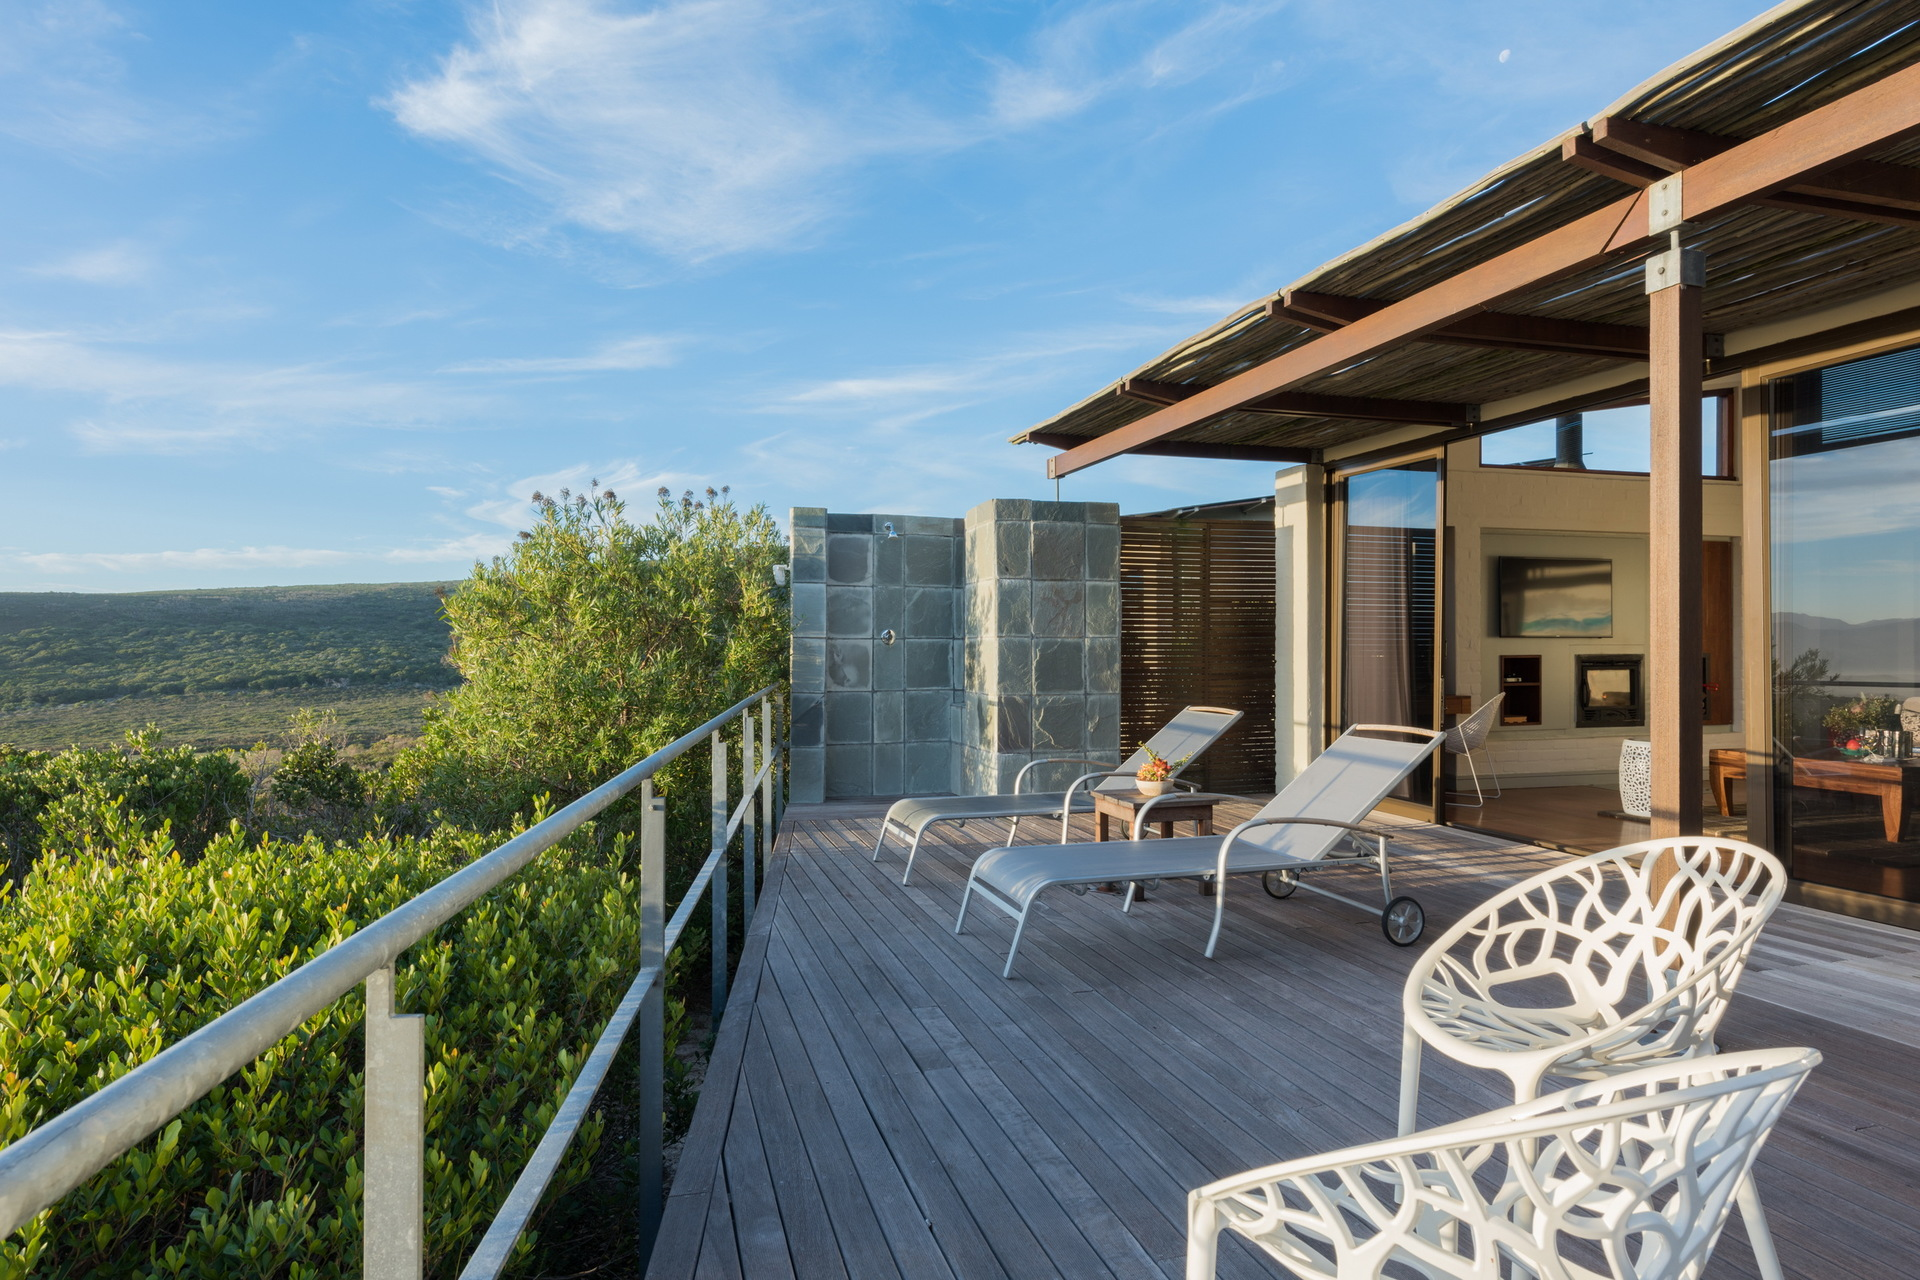 grootbos forest lodge - suite 34 exterior #6.jpg